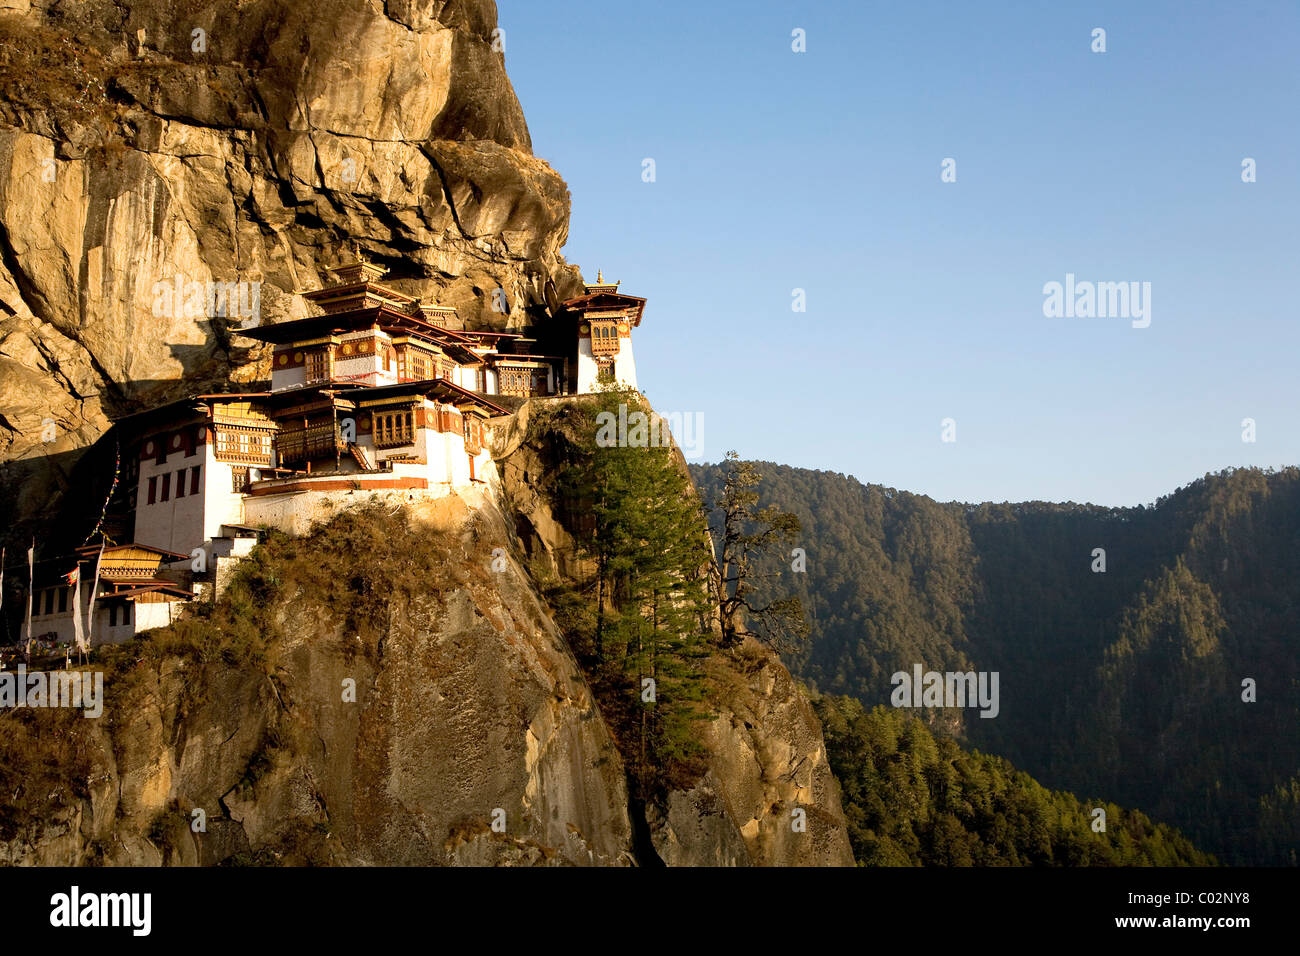 Taktsang Monastery, 3120m, also known as Tiger's Nest, Paro, Bhutan, Kingdom of Bhutan, South Asia - Stock Image